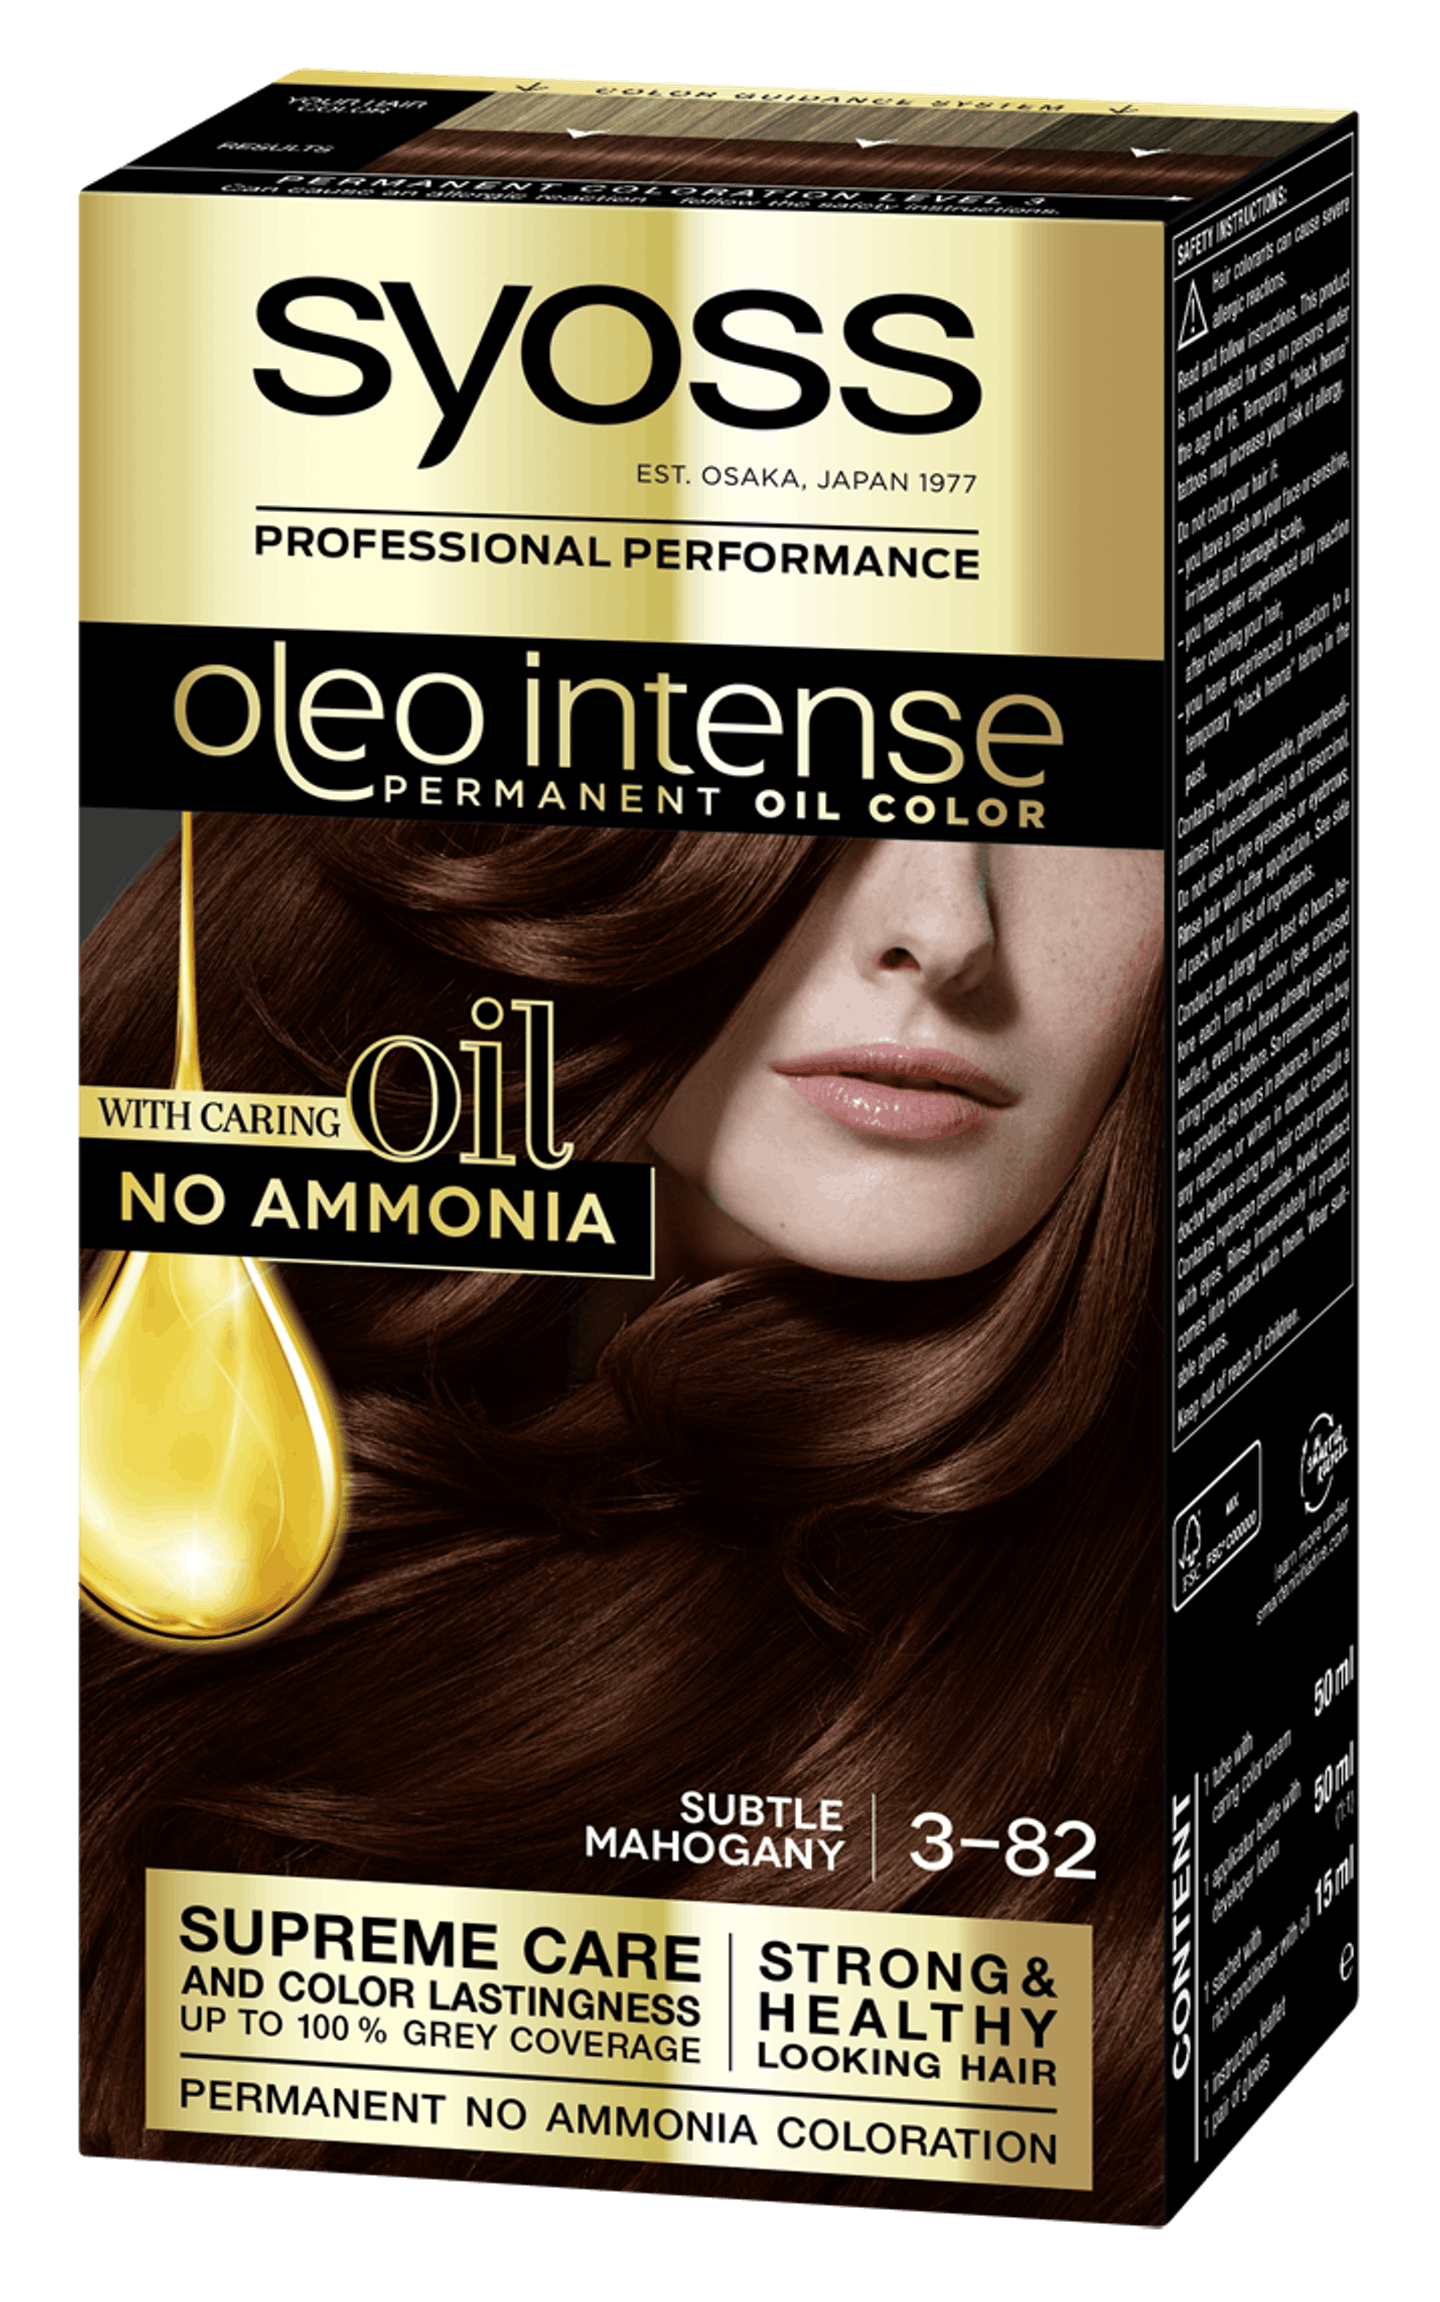 Syoss Oleo Intense Permanent Oil Color 3-82 Subtle Mahogany